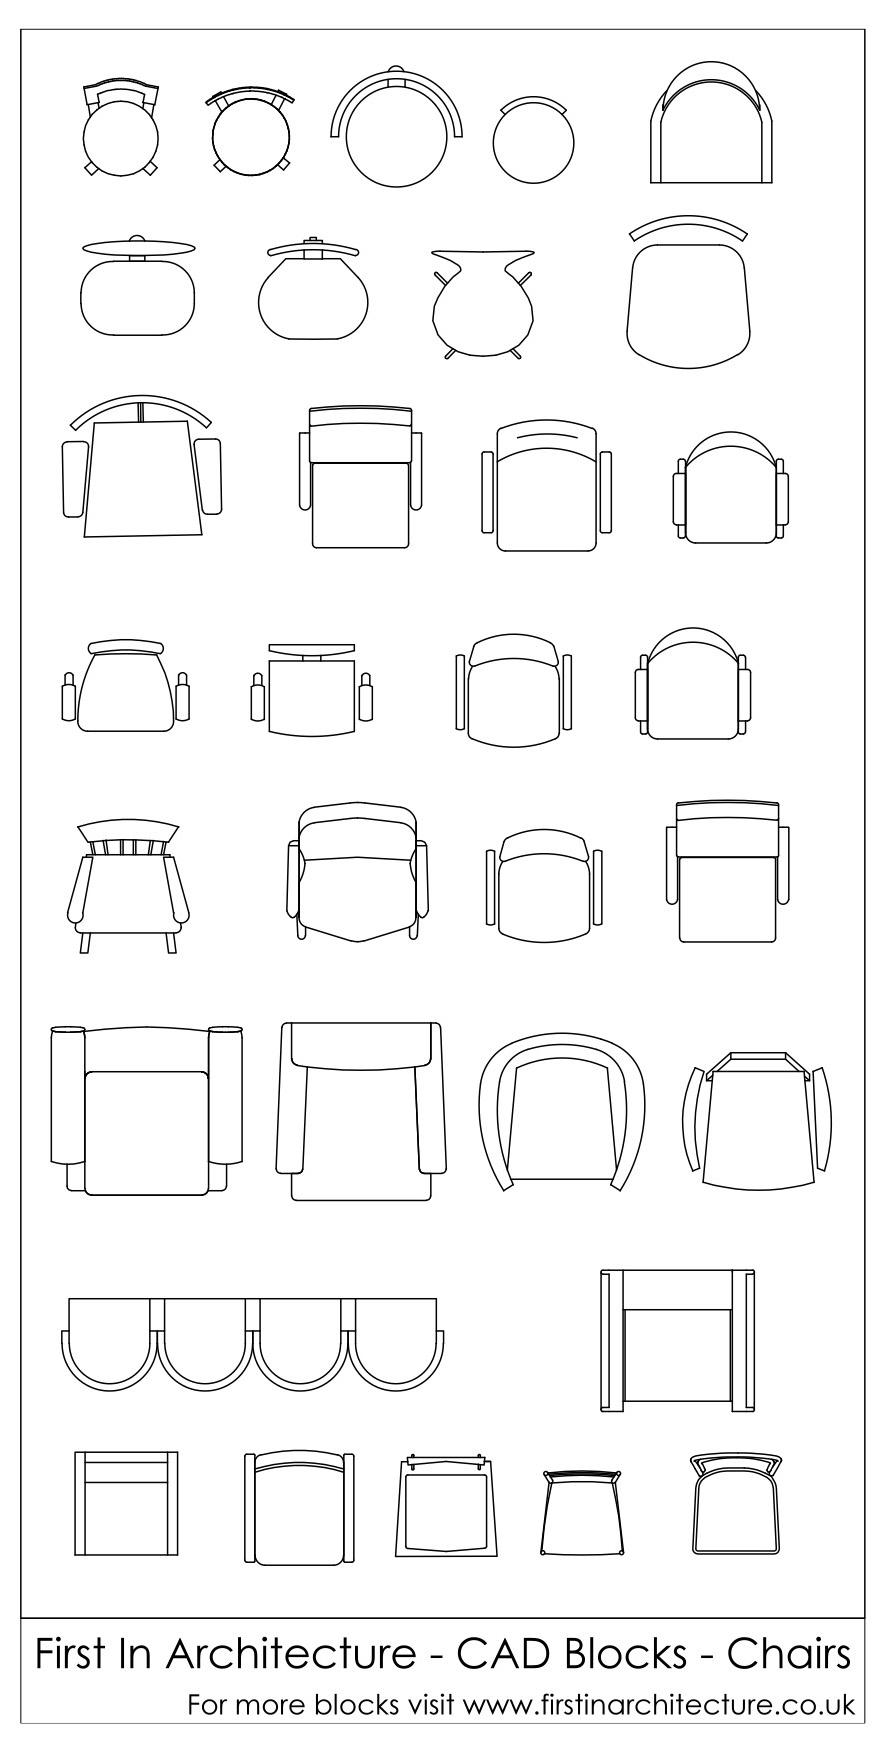 Free Cad Blocks Chairs In Plan